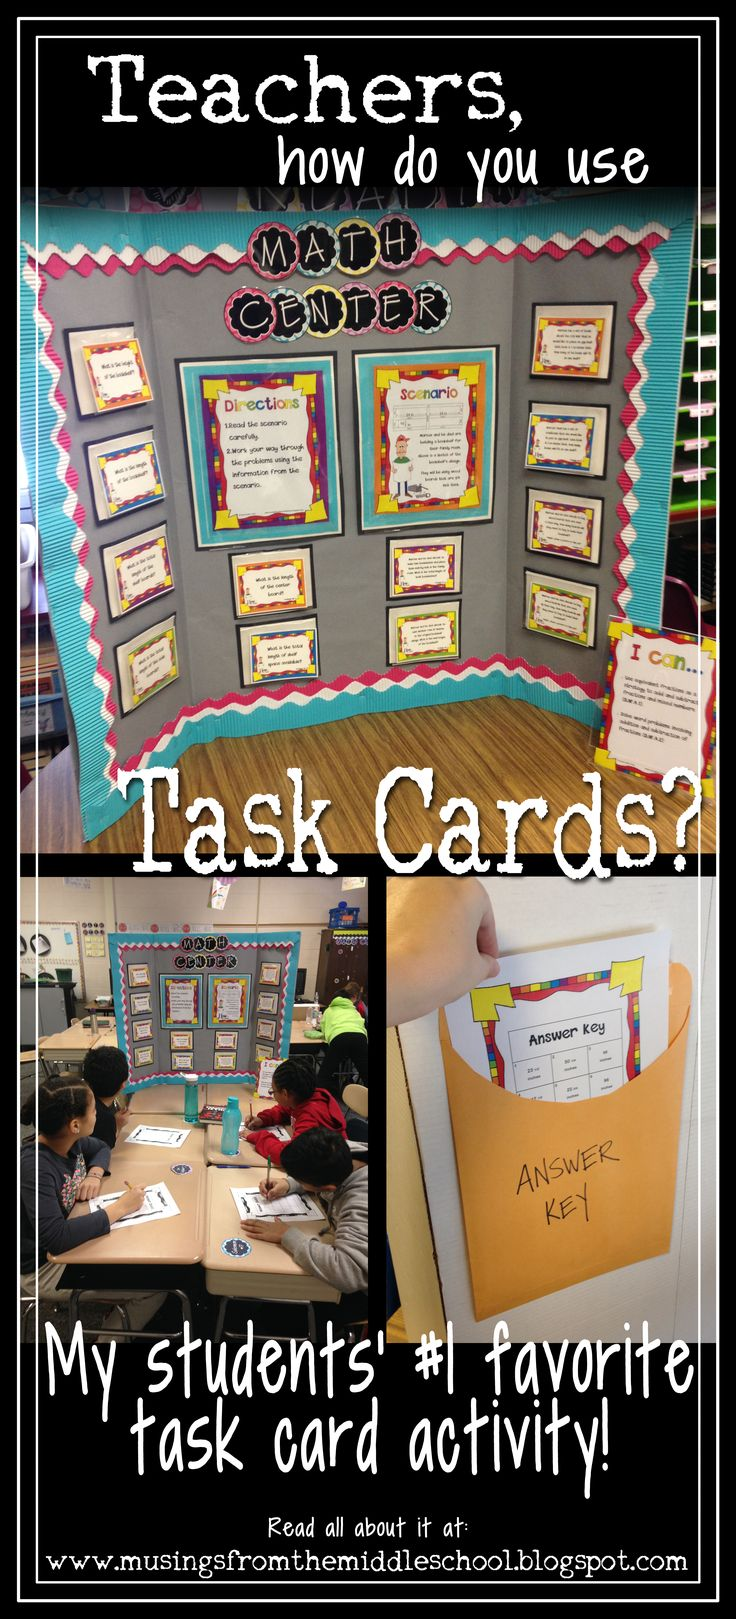 My students' #1 favorite task card activity! I wonder how I can make one of these in my spare time....